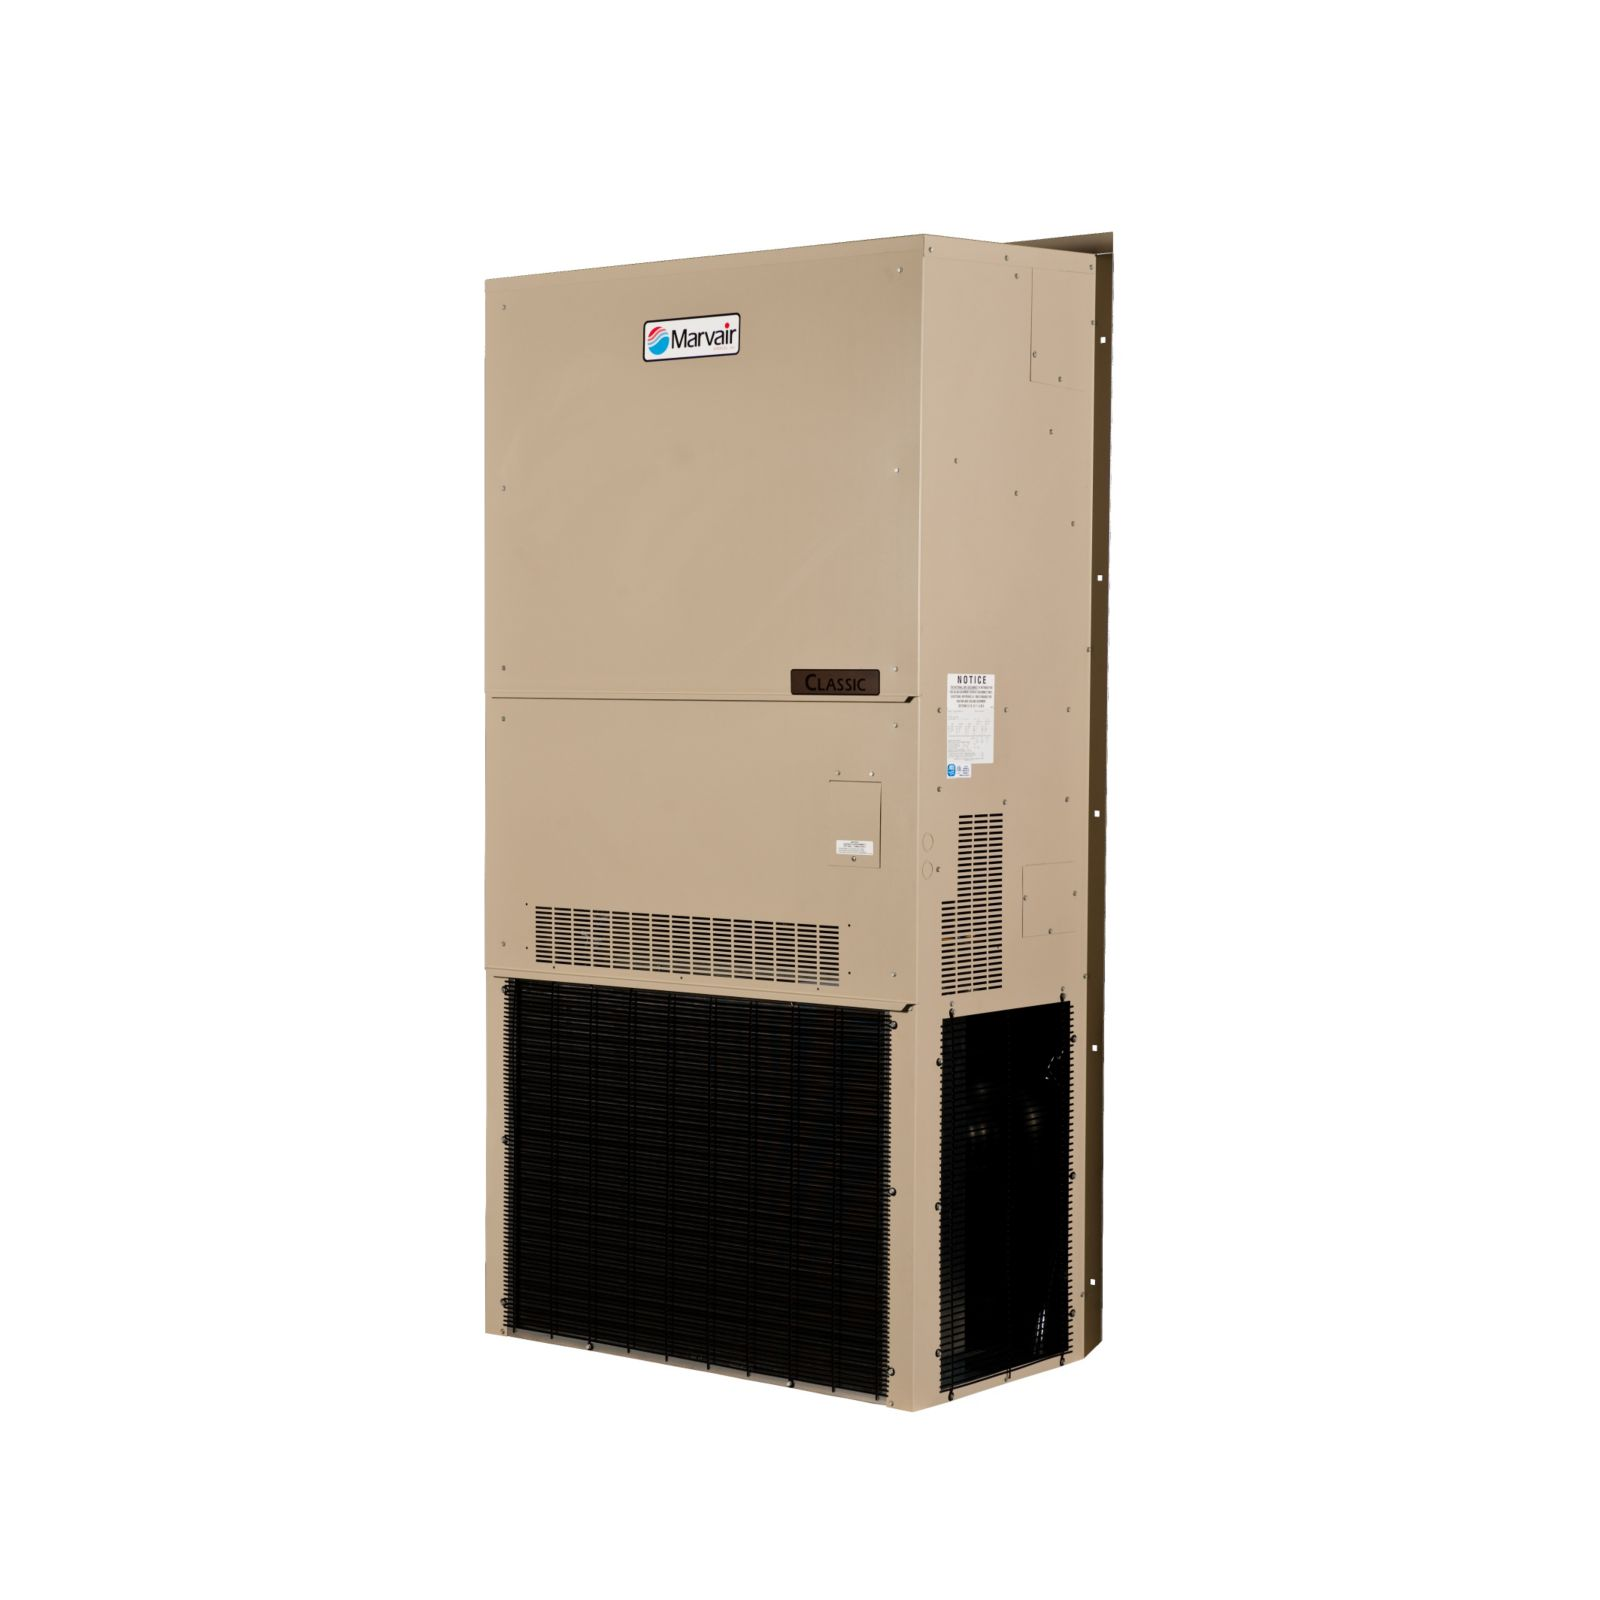 Marvair AVPA36ACA100M5-A2-100 - Wall Mount AC, ModPac, 3 Ton, 208-230/1/60, No Heat, Manual Damper, R410A